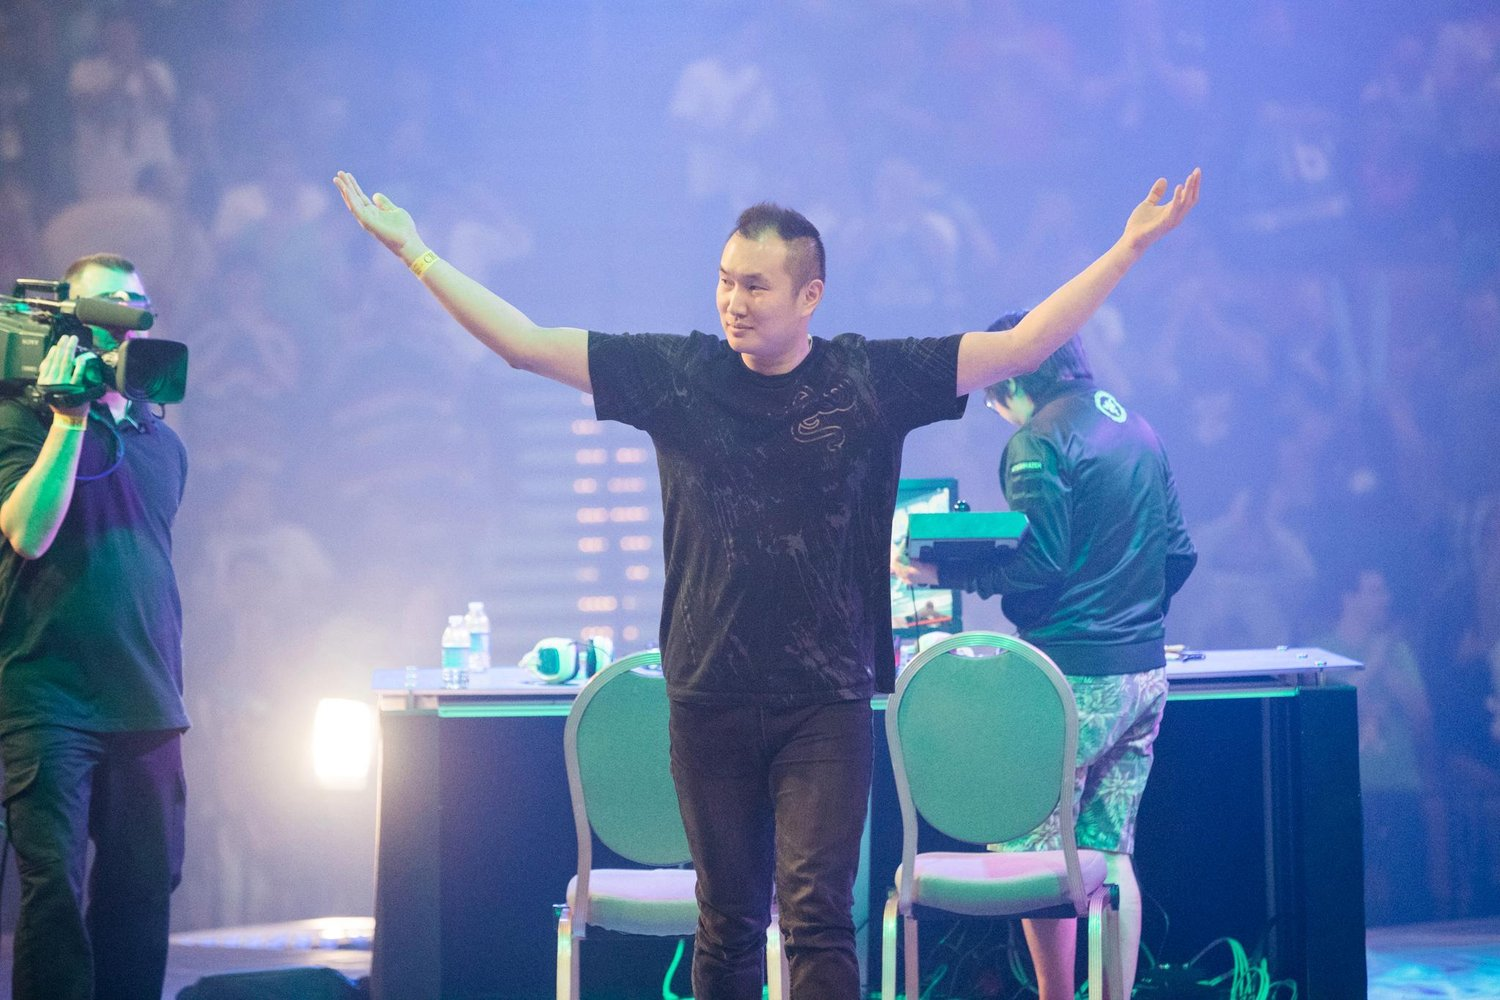 infiltration on stage after winning evo 2016